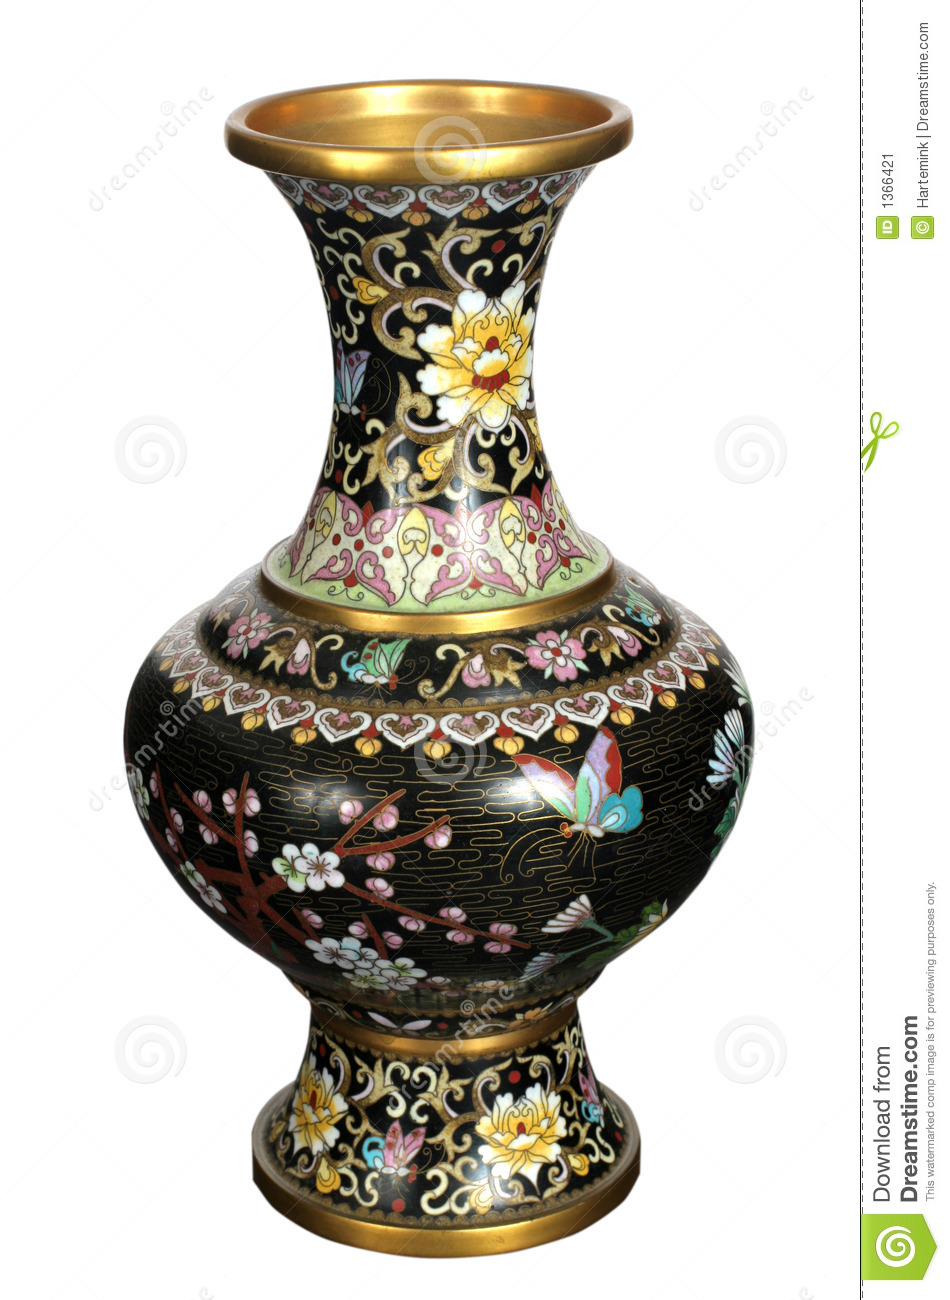 Antique Vase Stock Image Image Of Golden Beautiful Patterns 1366421